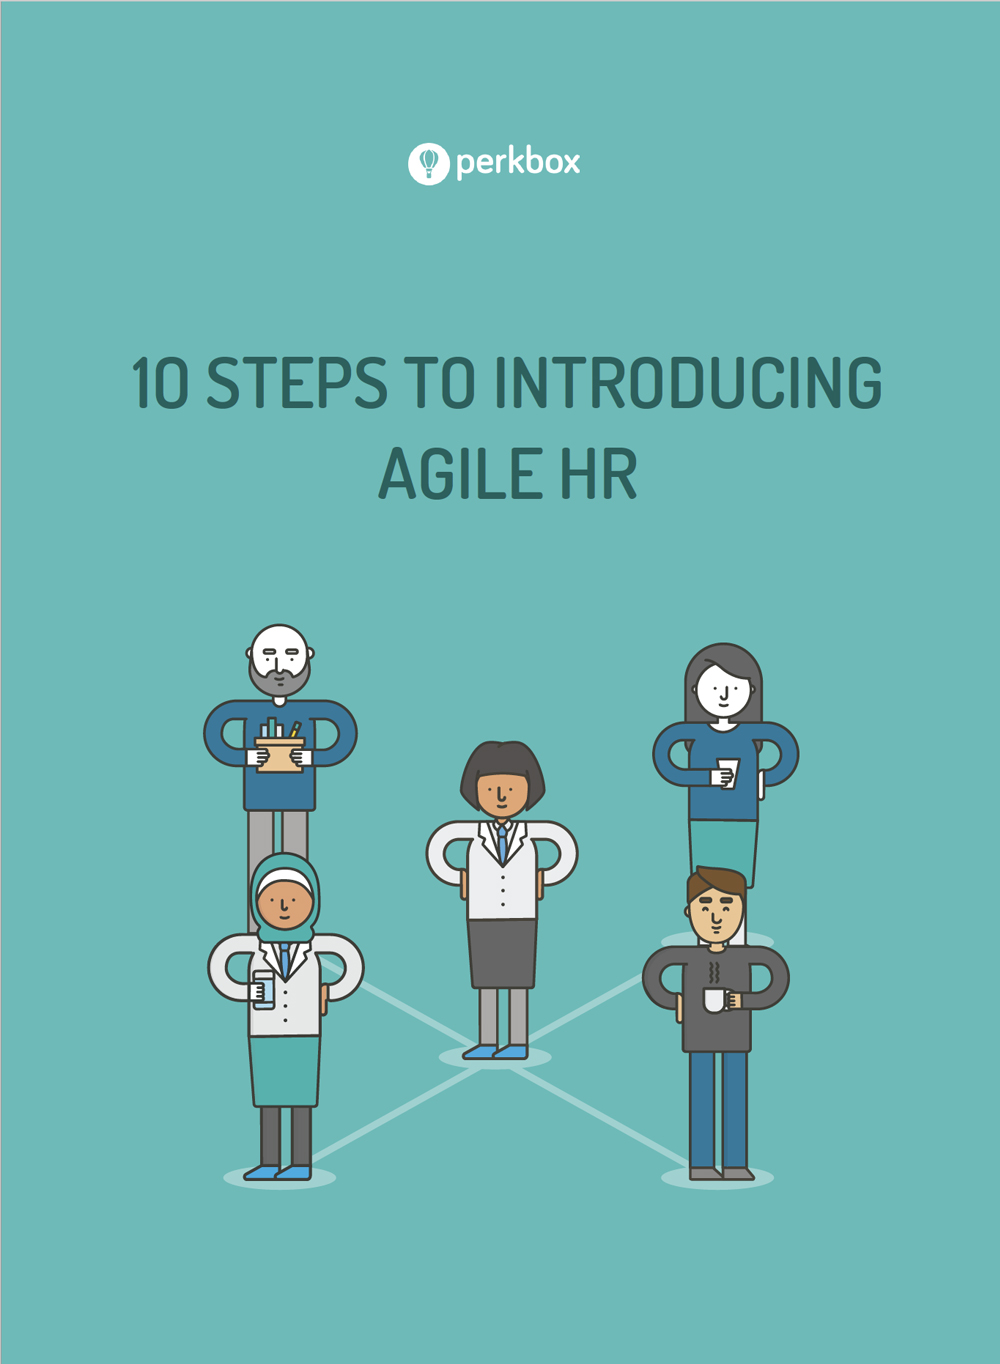 10 Steps To Introducing Agile HR